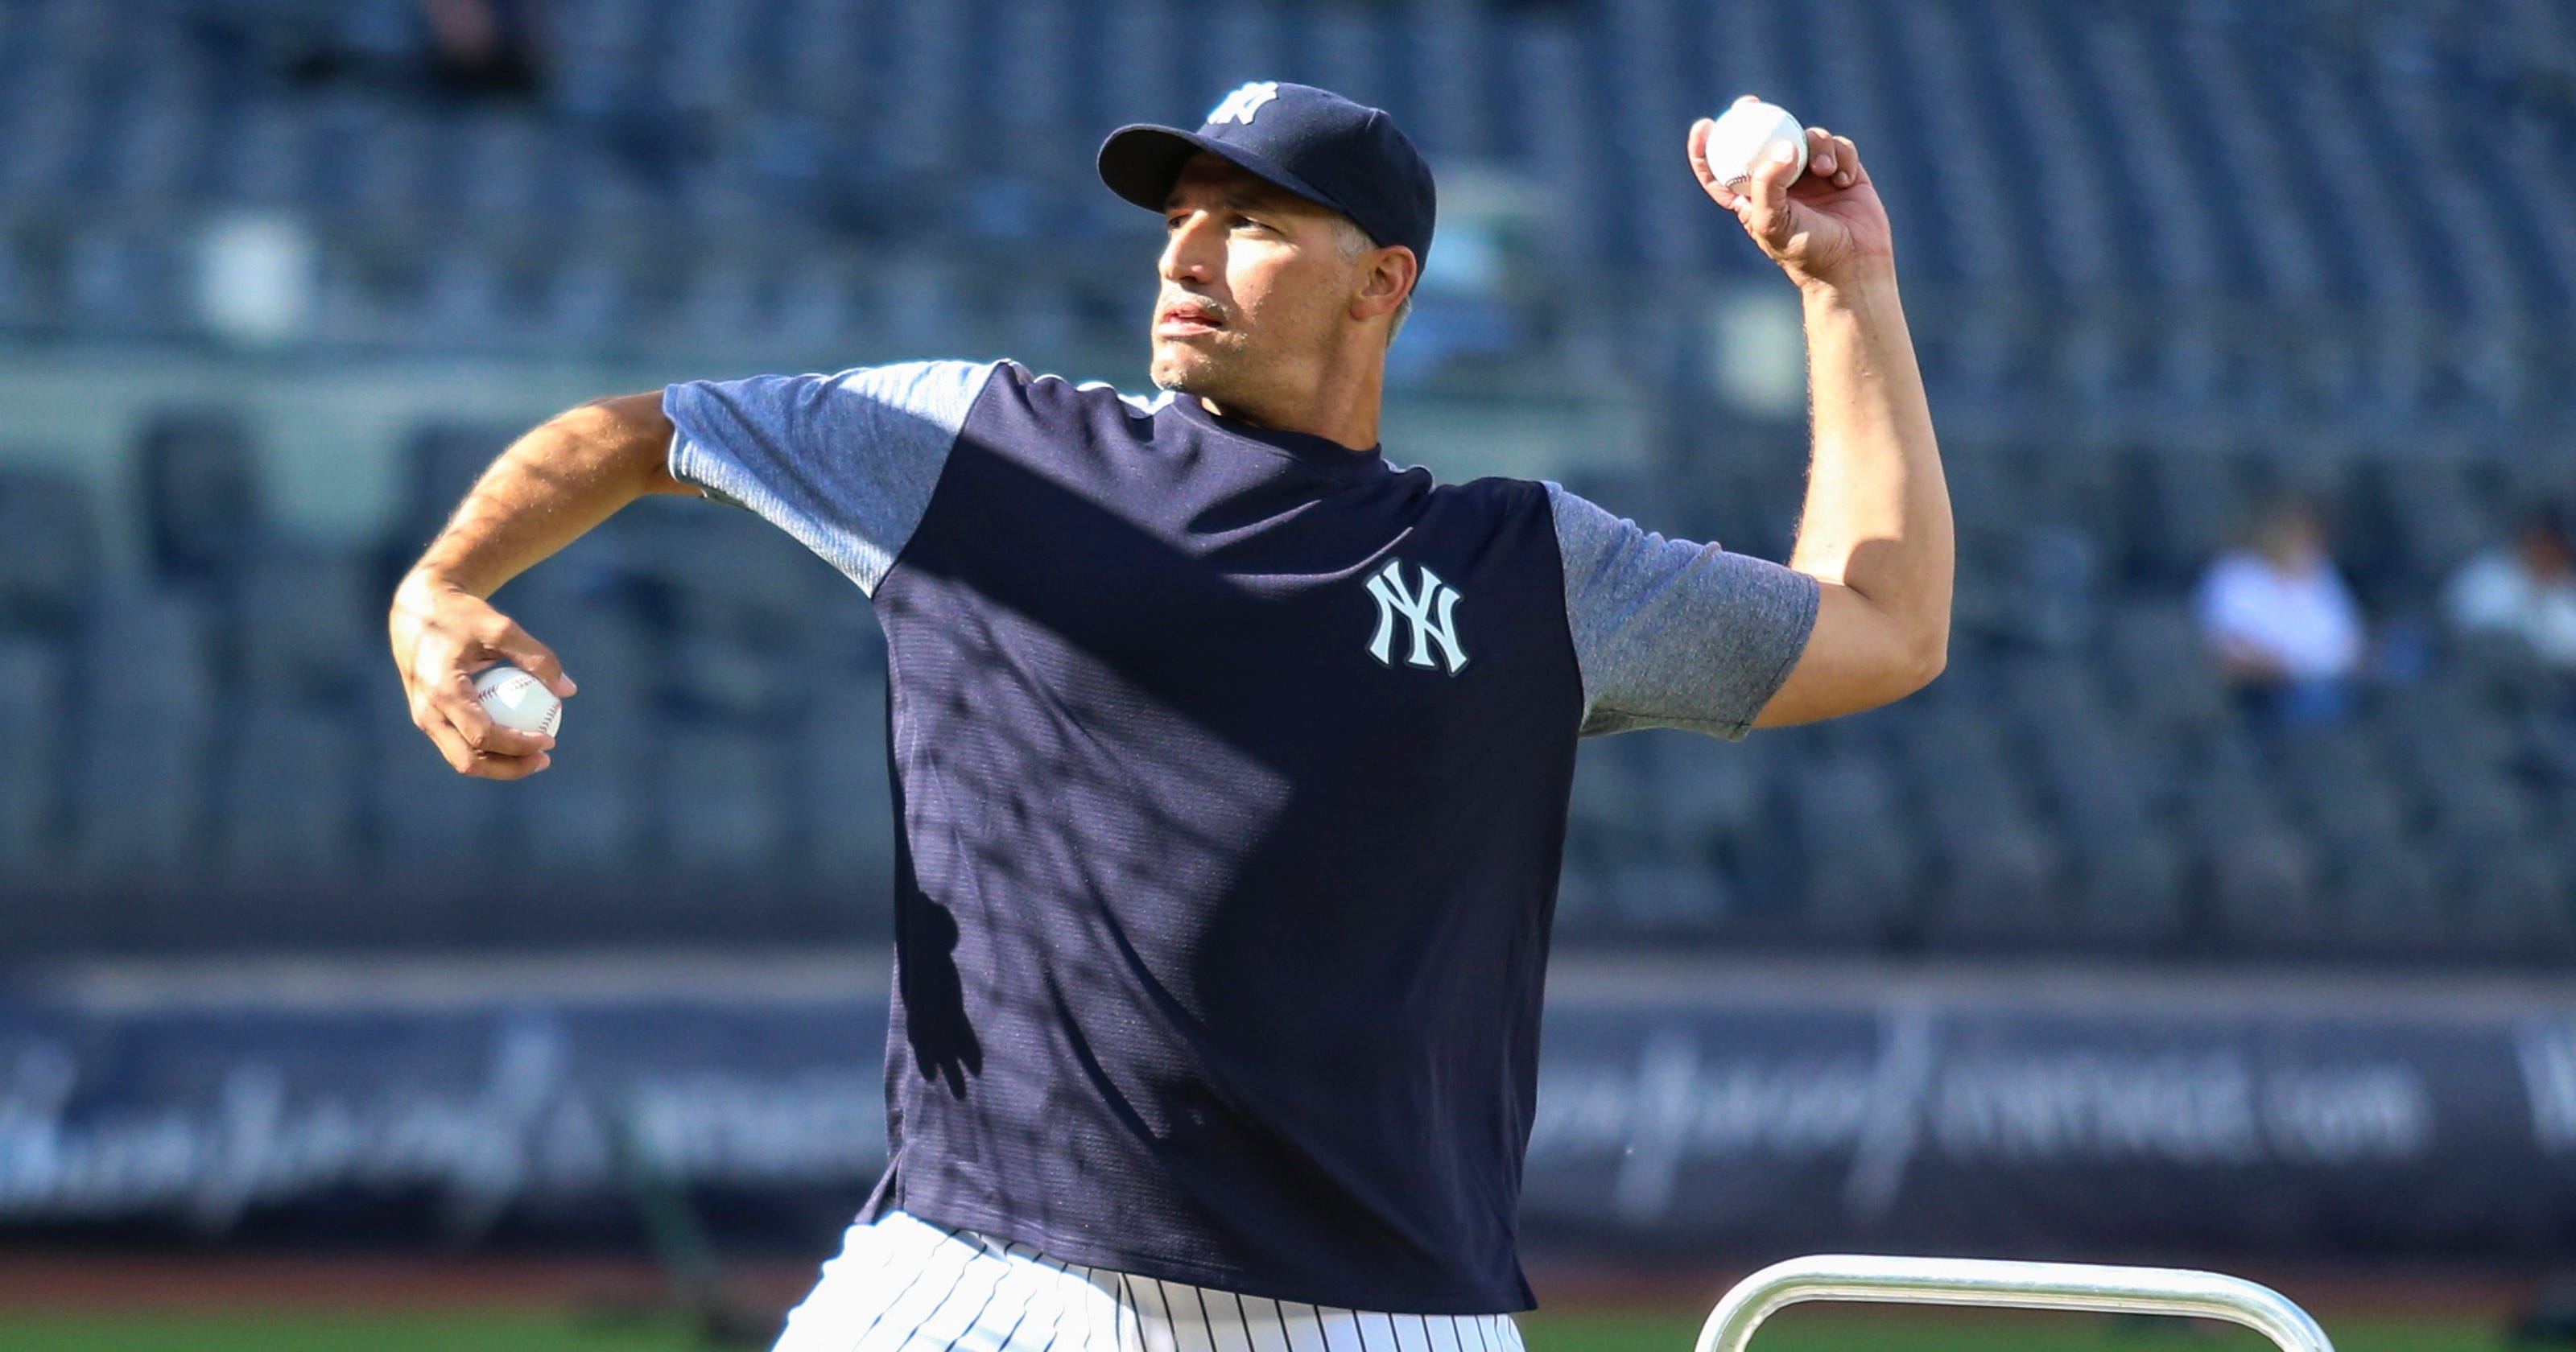 the latest 6a617 c43b6 Old Timers Pettitte, Swisher, Giambi join NY Yankees' youth ...